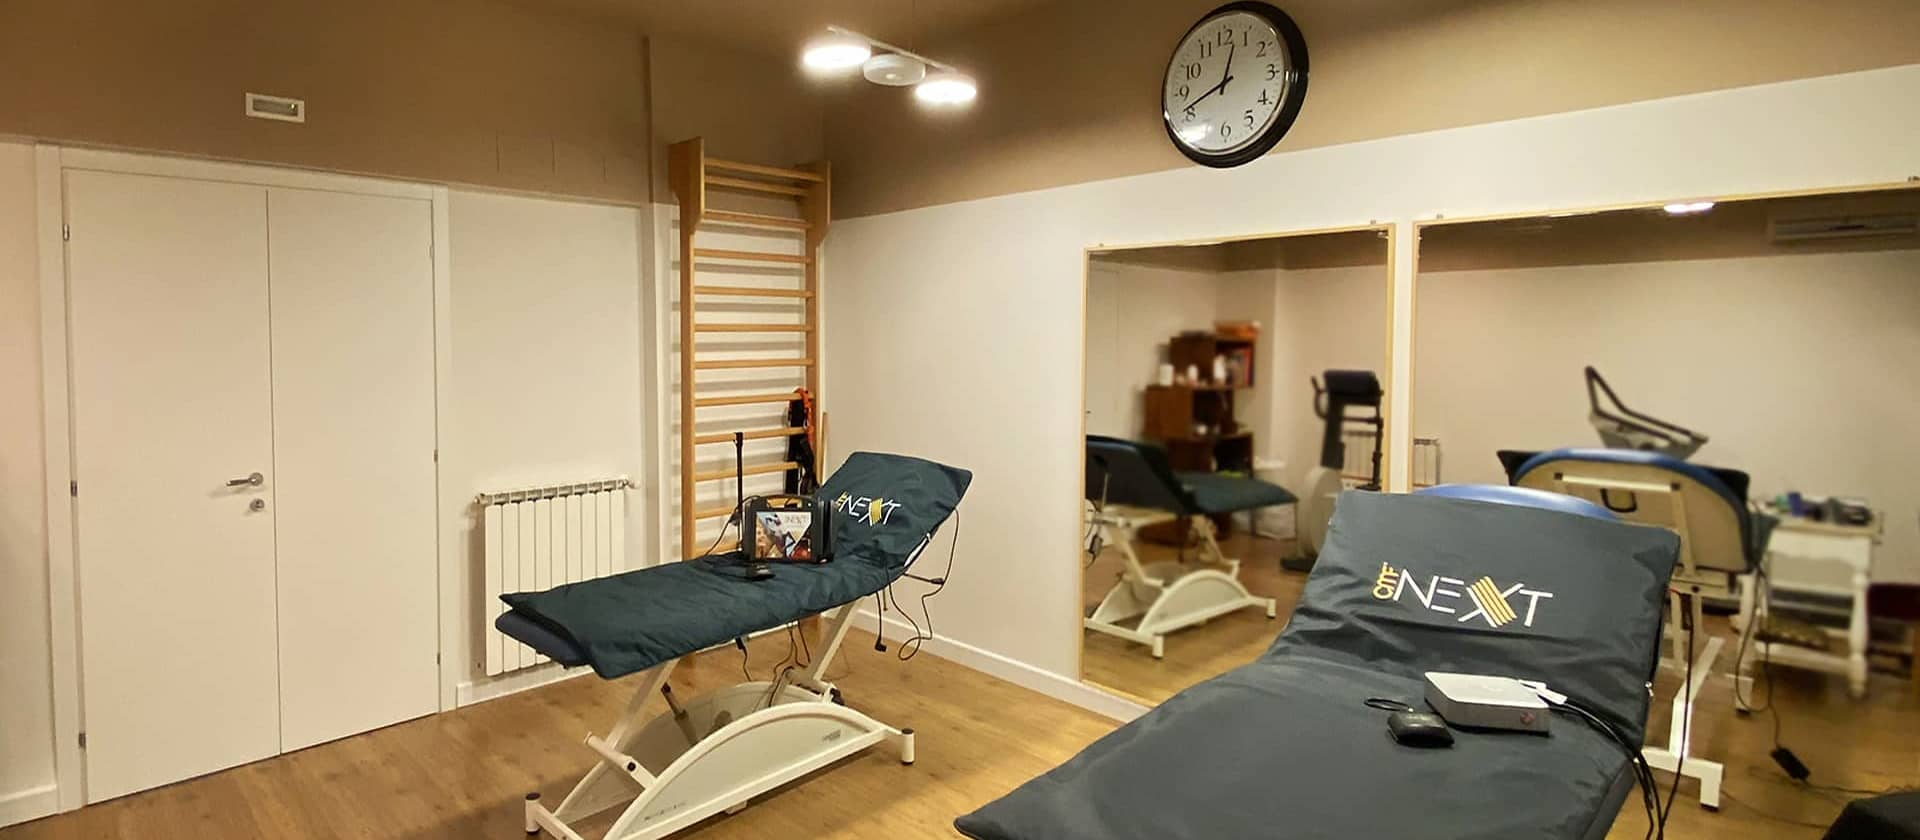 physiosteoworks